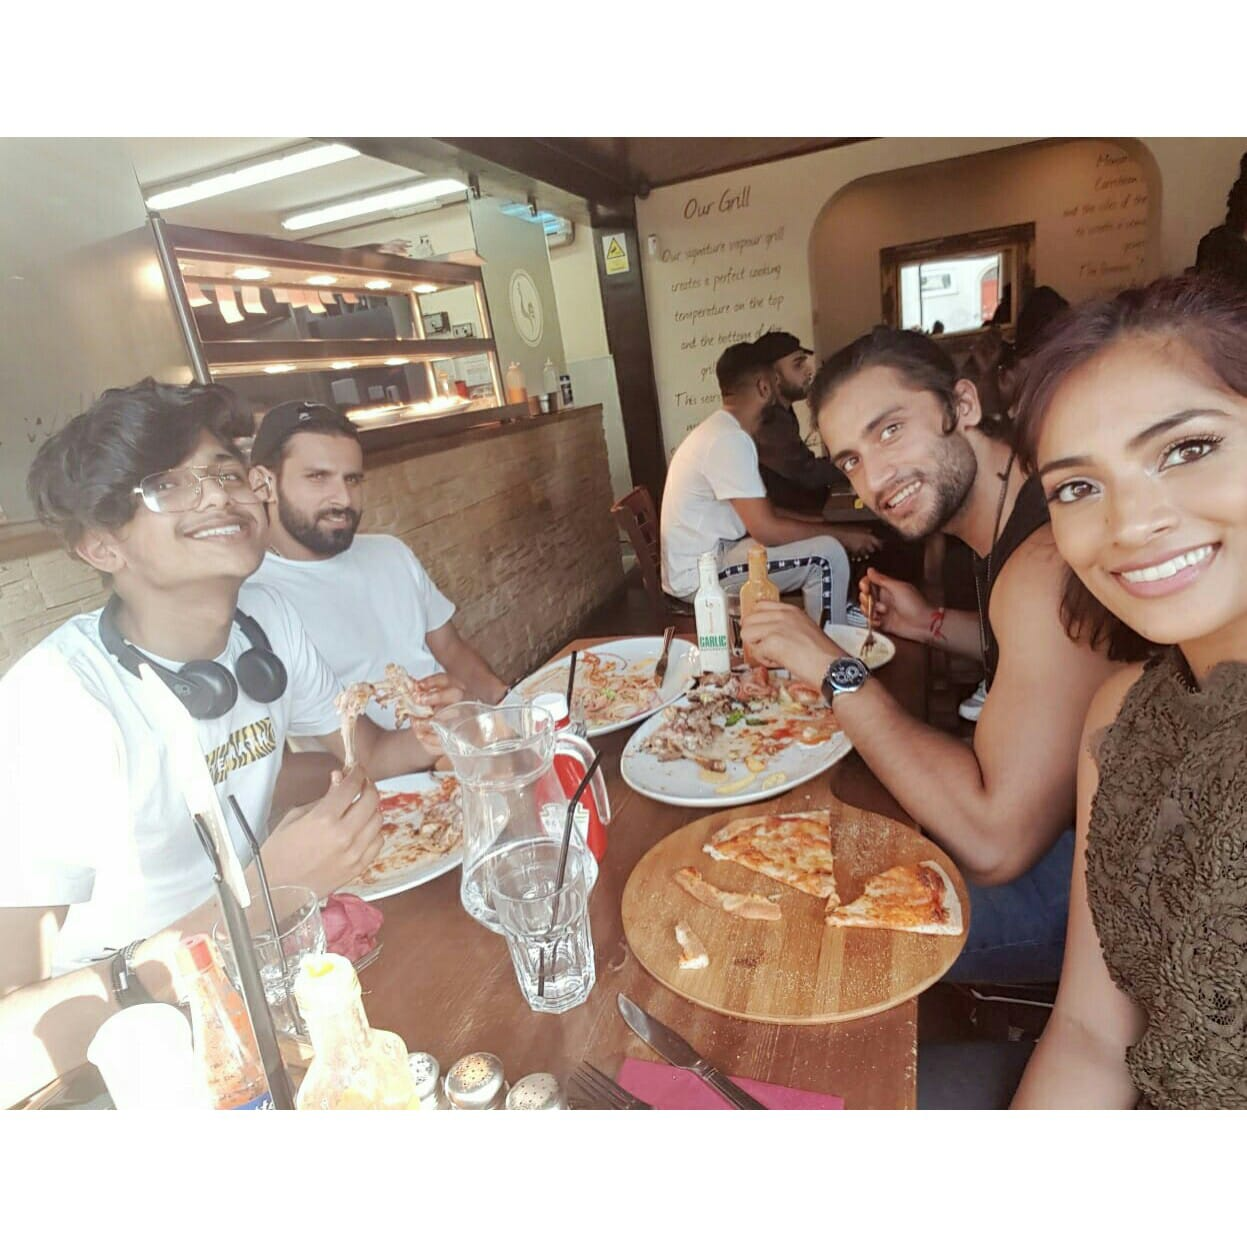 - Ending the shoot with yummy food at Manjaros with the crew